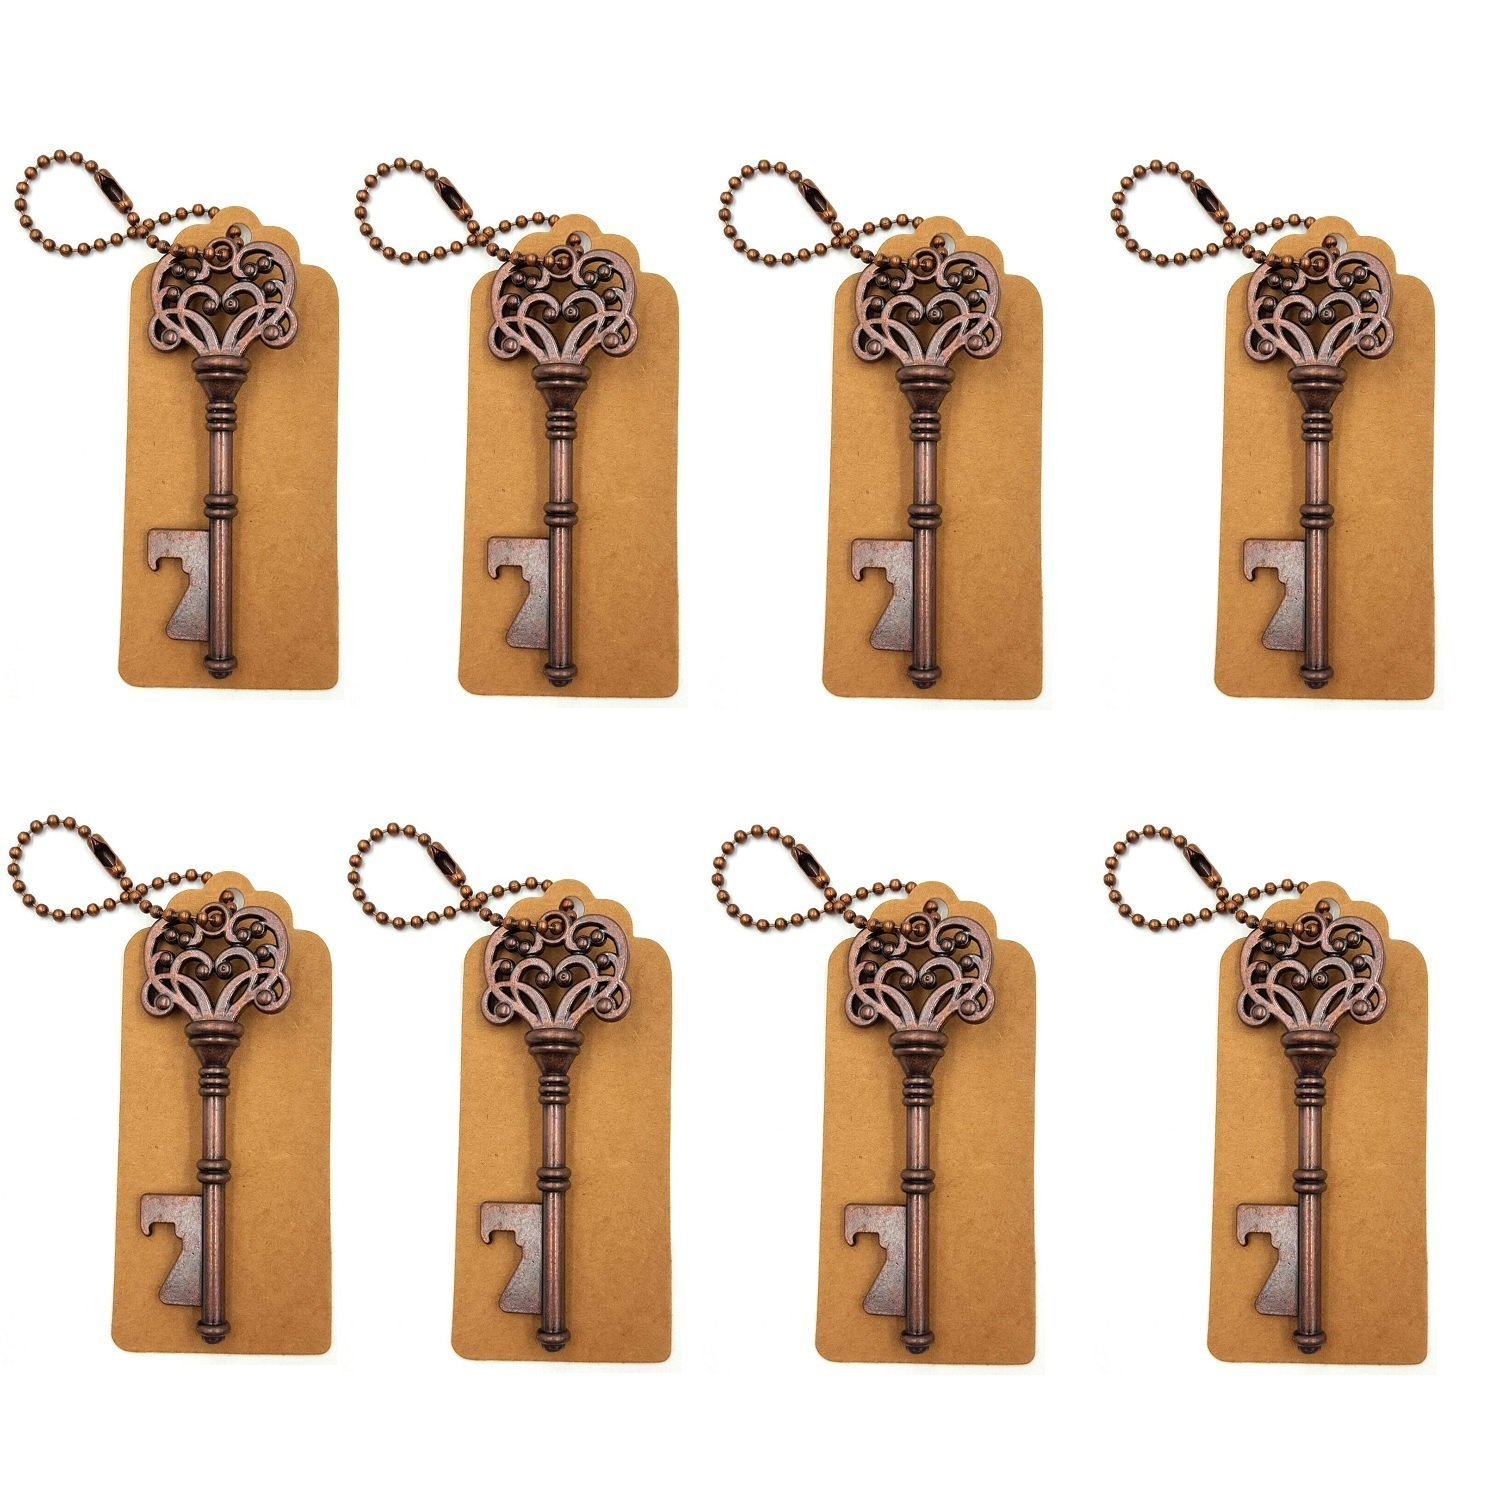 DerBlue 60 PCS Skeleton Key Bottle Openers Wedding Favors Antique Rustic Decoration with Escort Tag Card (Bronze) COMINHKPR142047